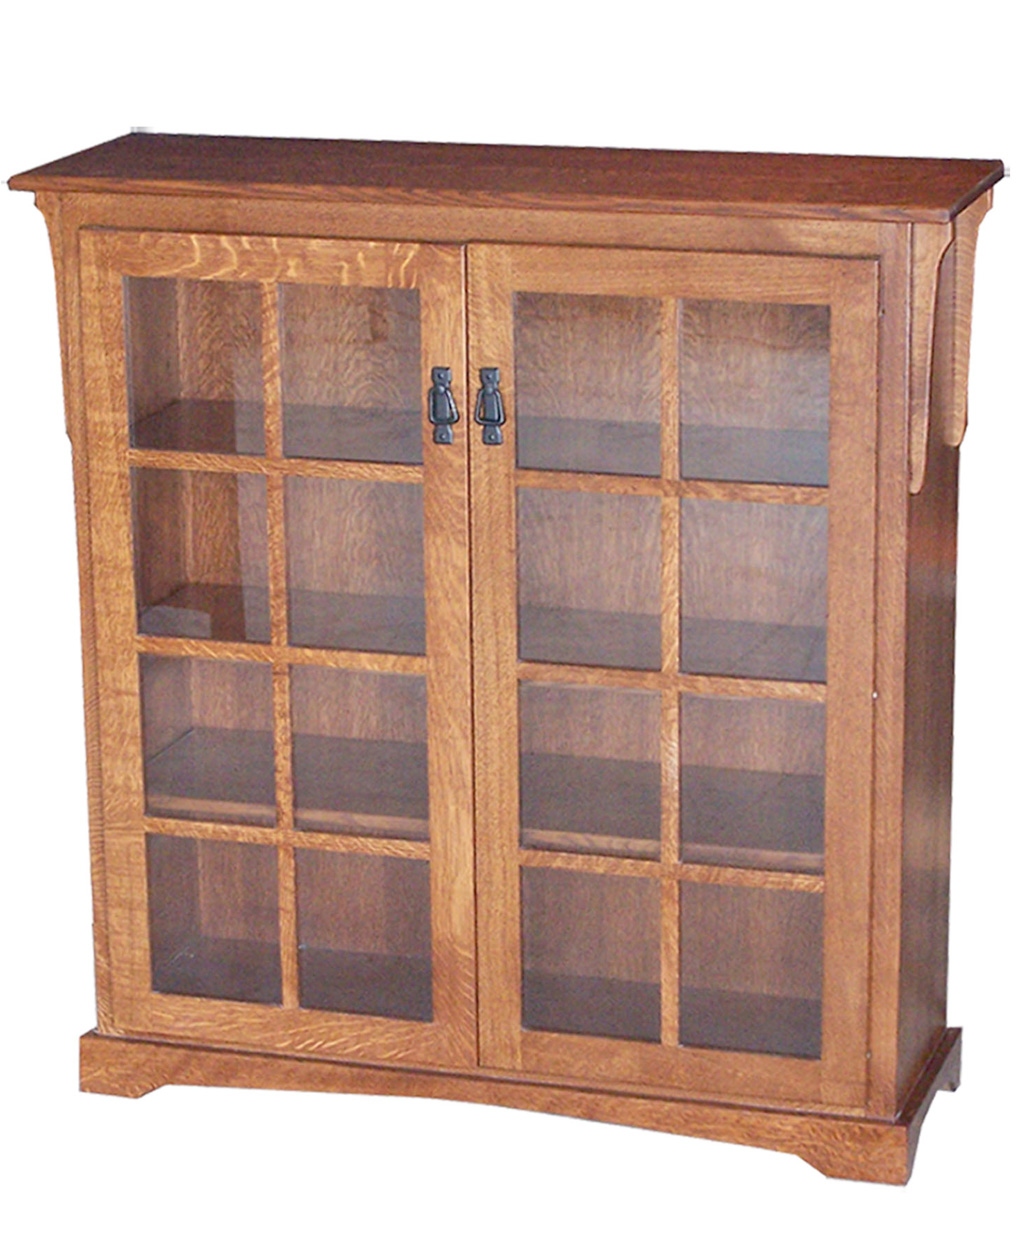 Medium Mission Bookcase With Doors Amish Direct Furniture